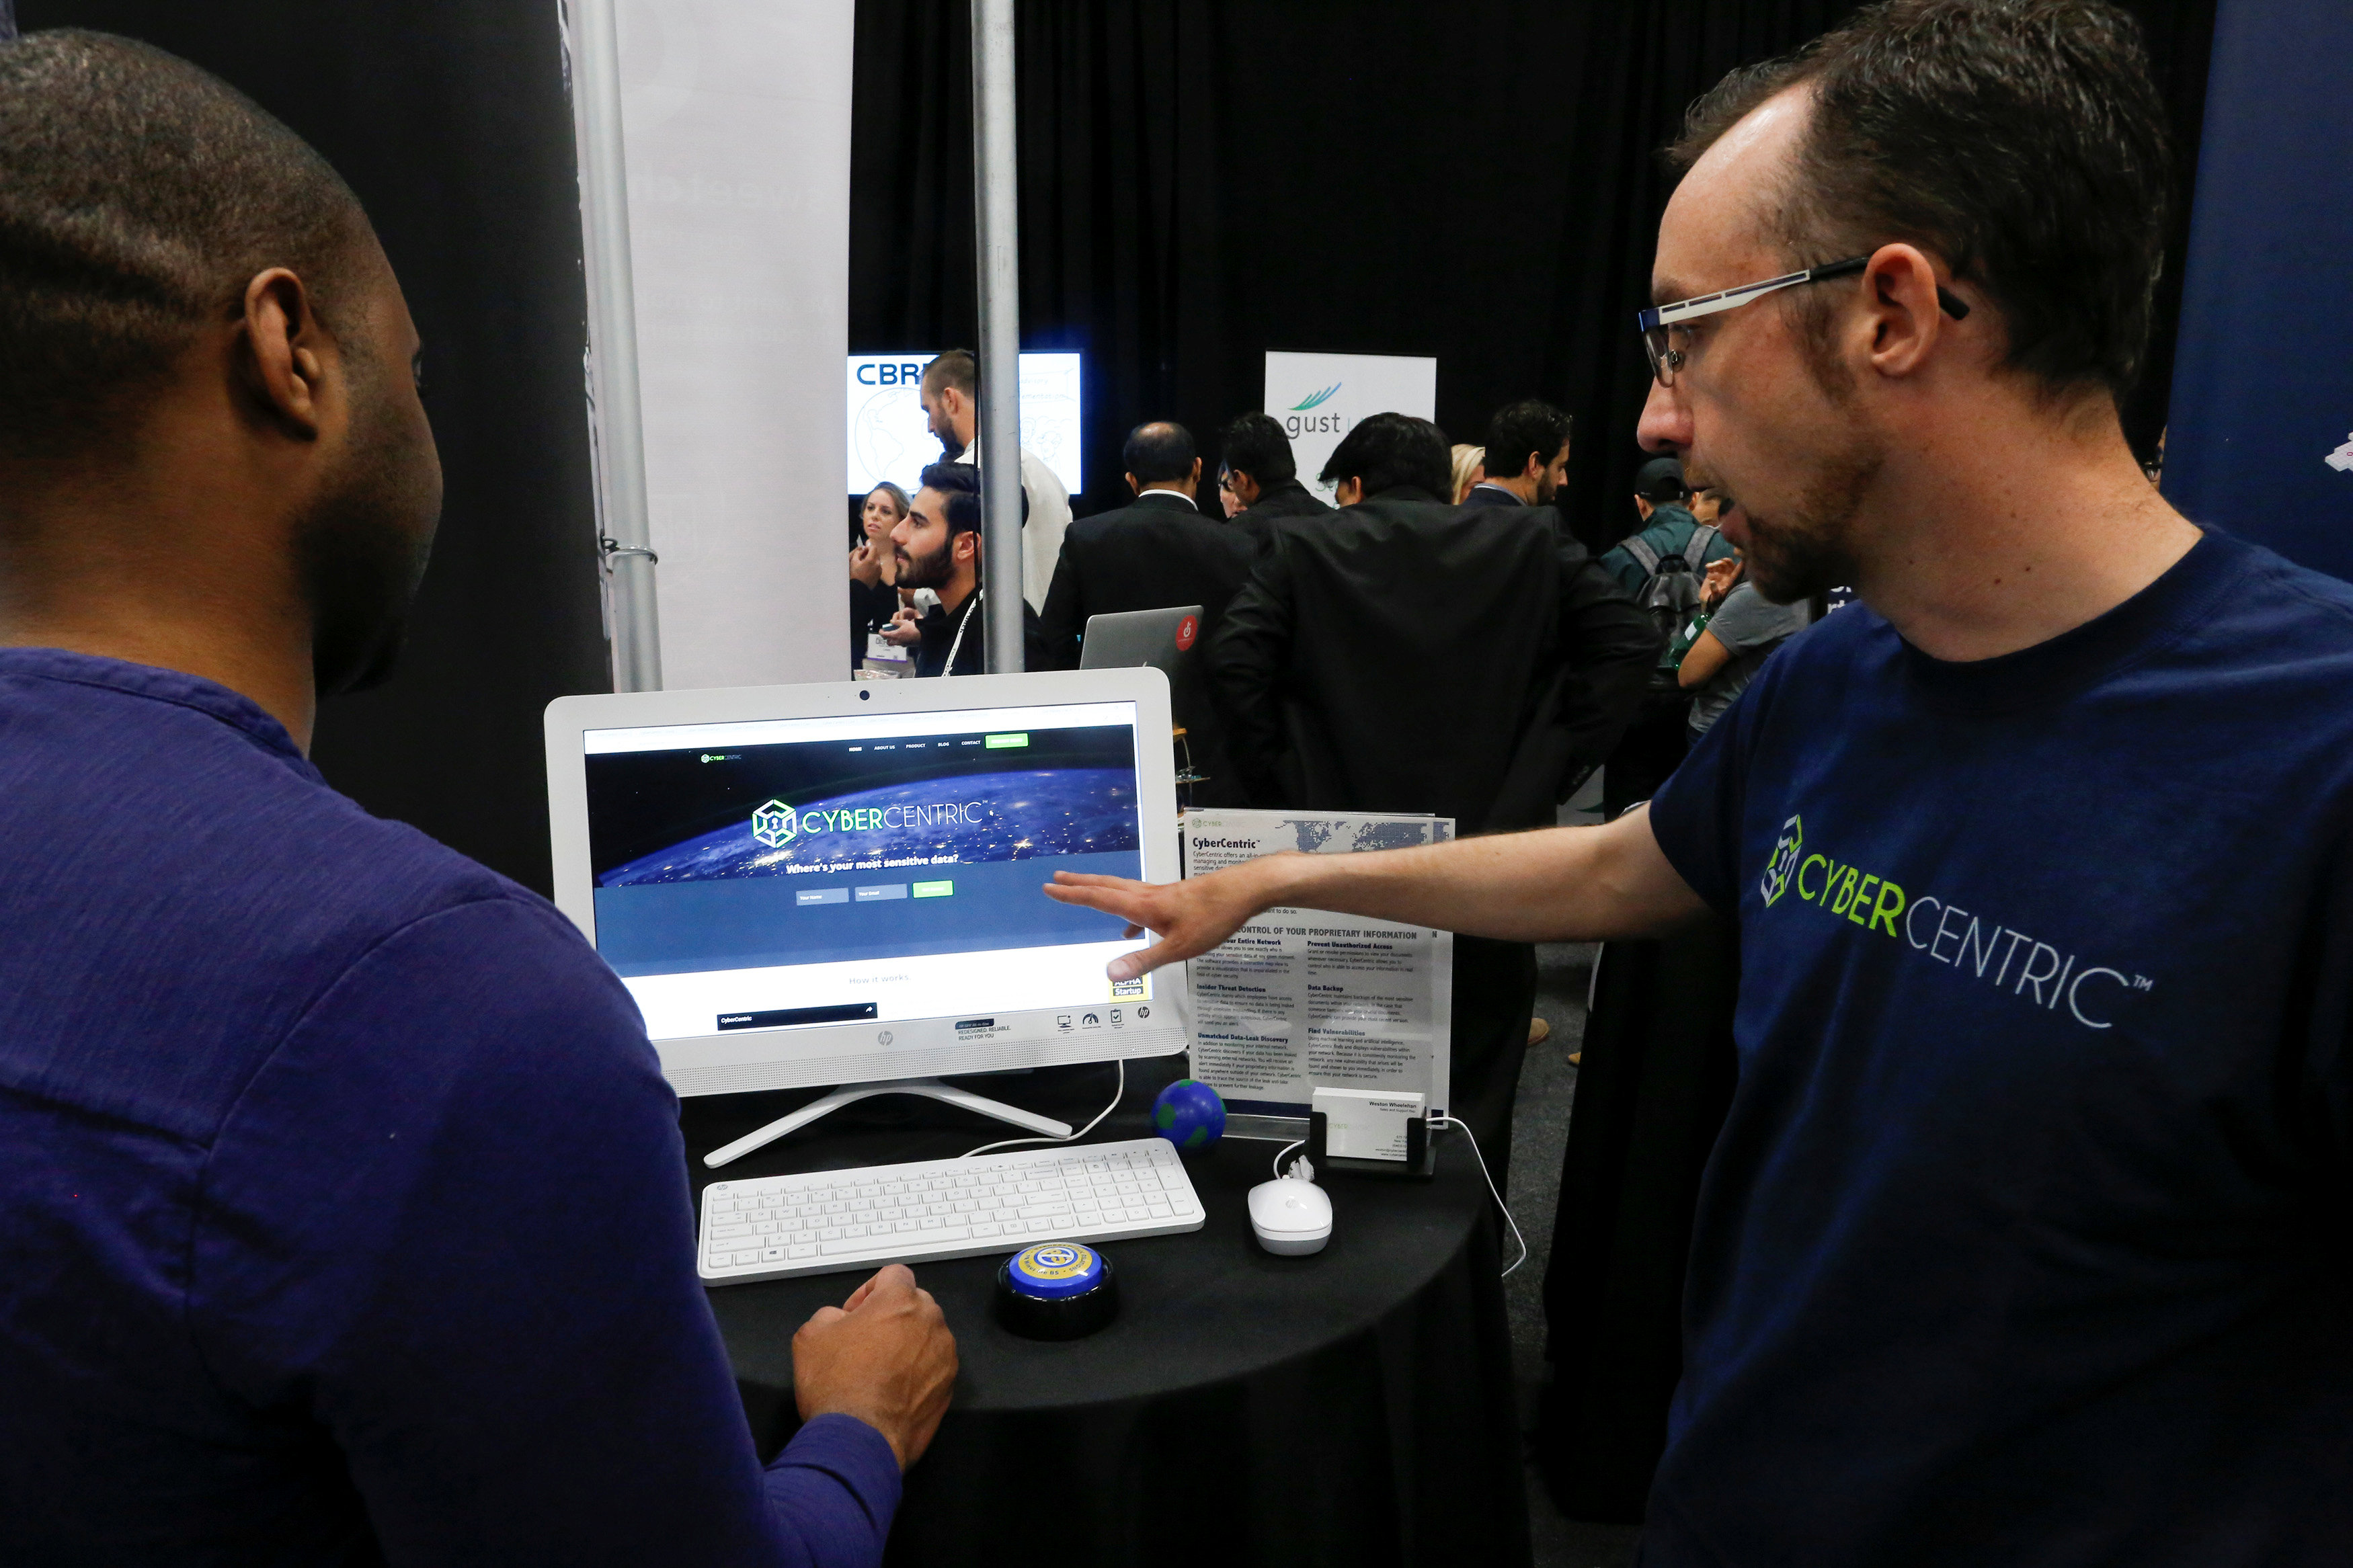 Weston Wheelehan (R) and Jeremiah Steptoe, CEO of  CyberCentric, give a demonstration of their Cybersecurity platform to attendees during the TechCrunch Disrupt event in Manhattan on May 15, 2017. (REUTERS/Eduardo Munoz)